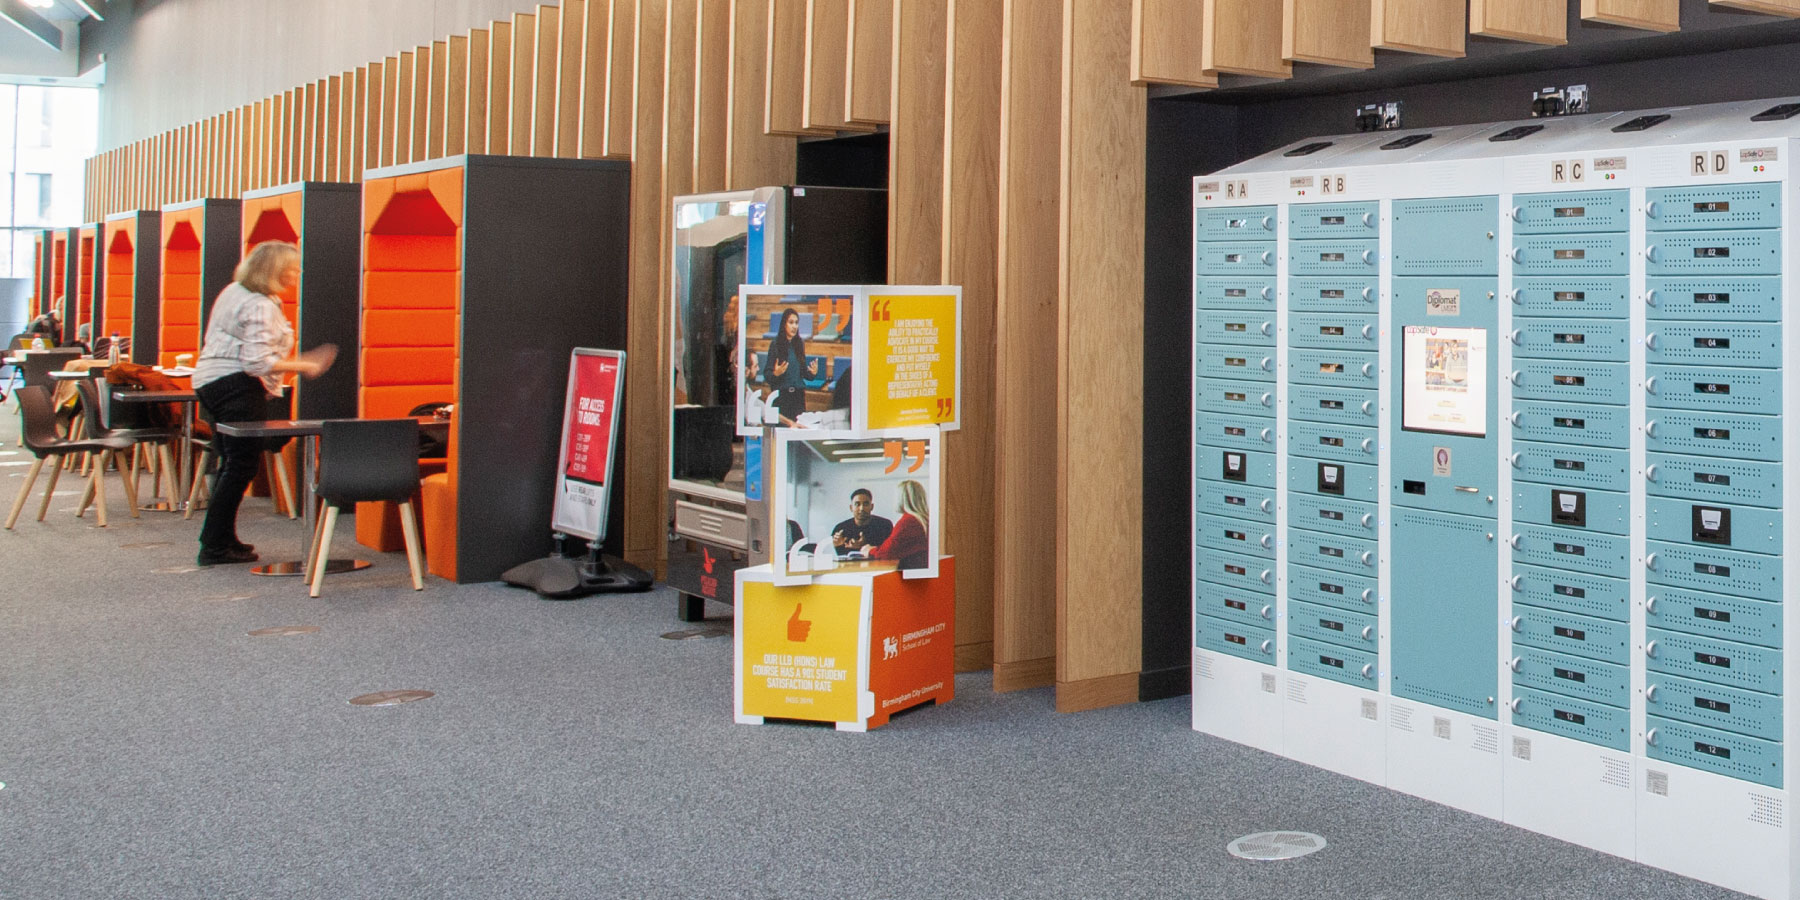 How to Create a Flexible Learning Space with Self-Service Charging Lockers